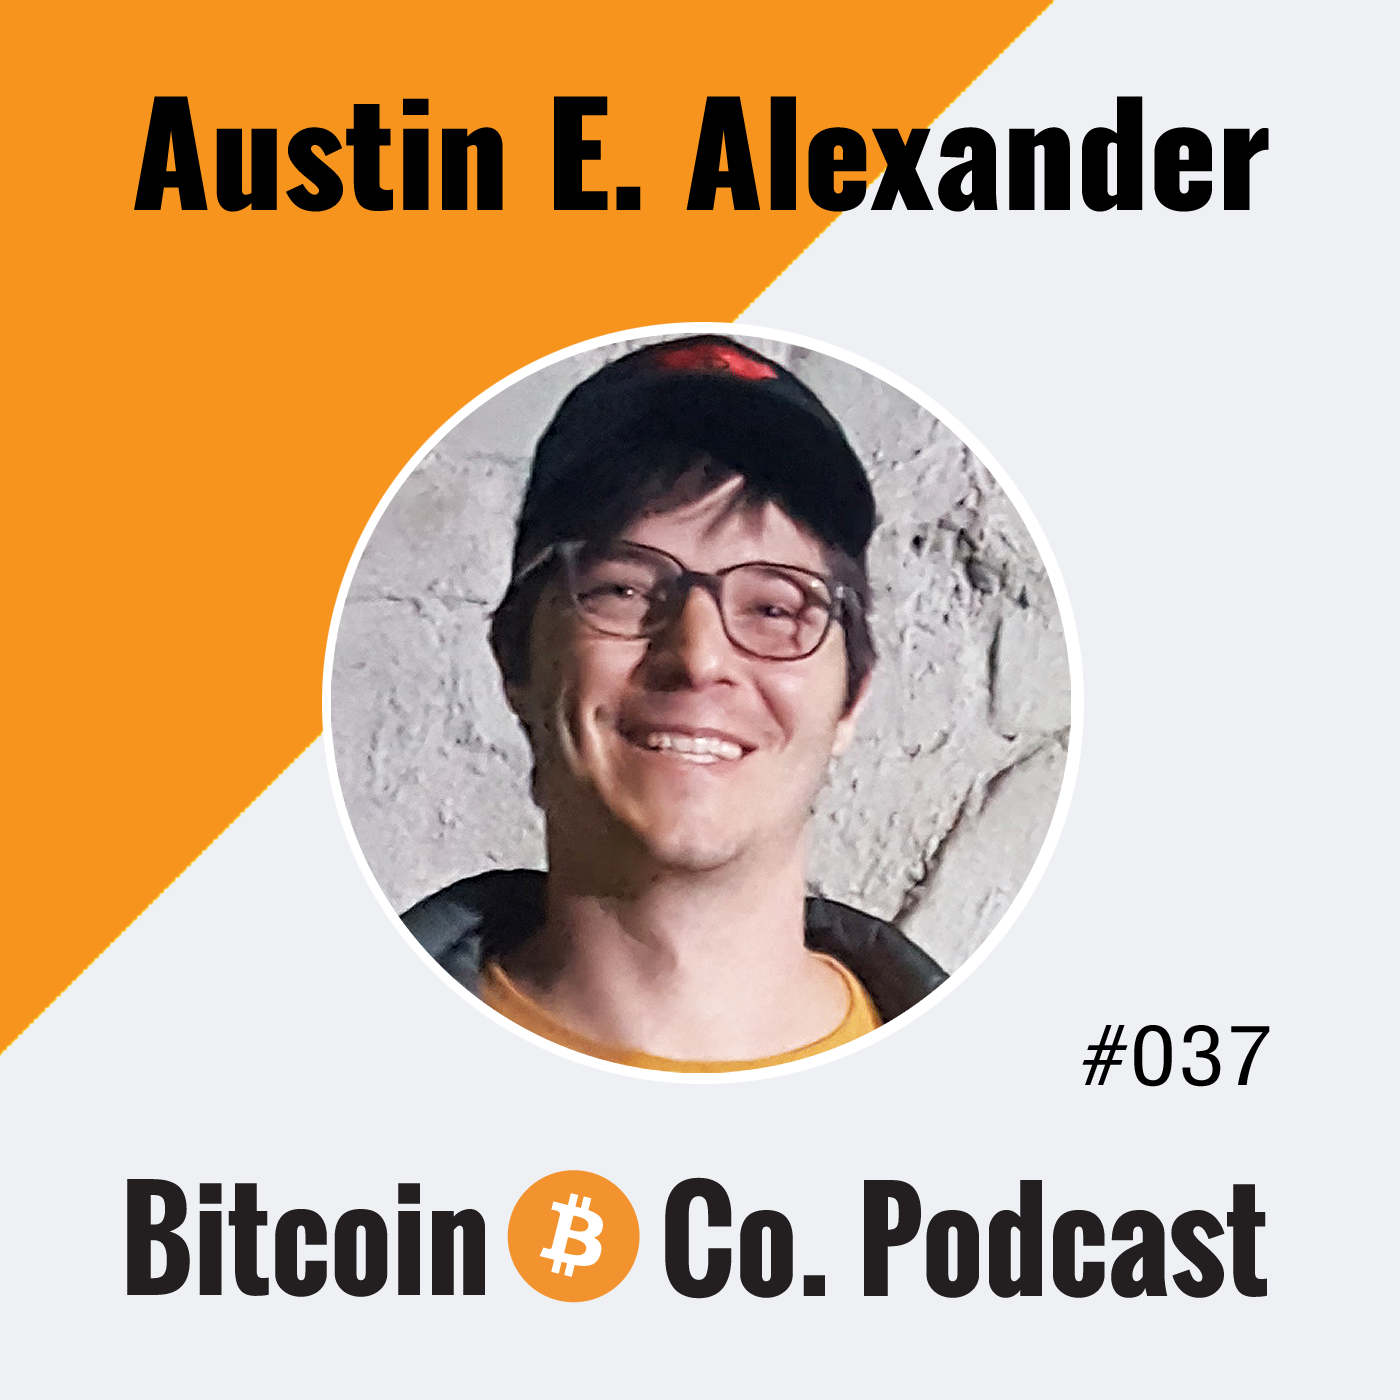 Co-Founder of Bitcoin Center New York Podcast